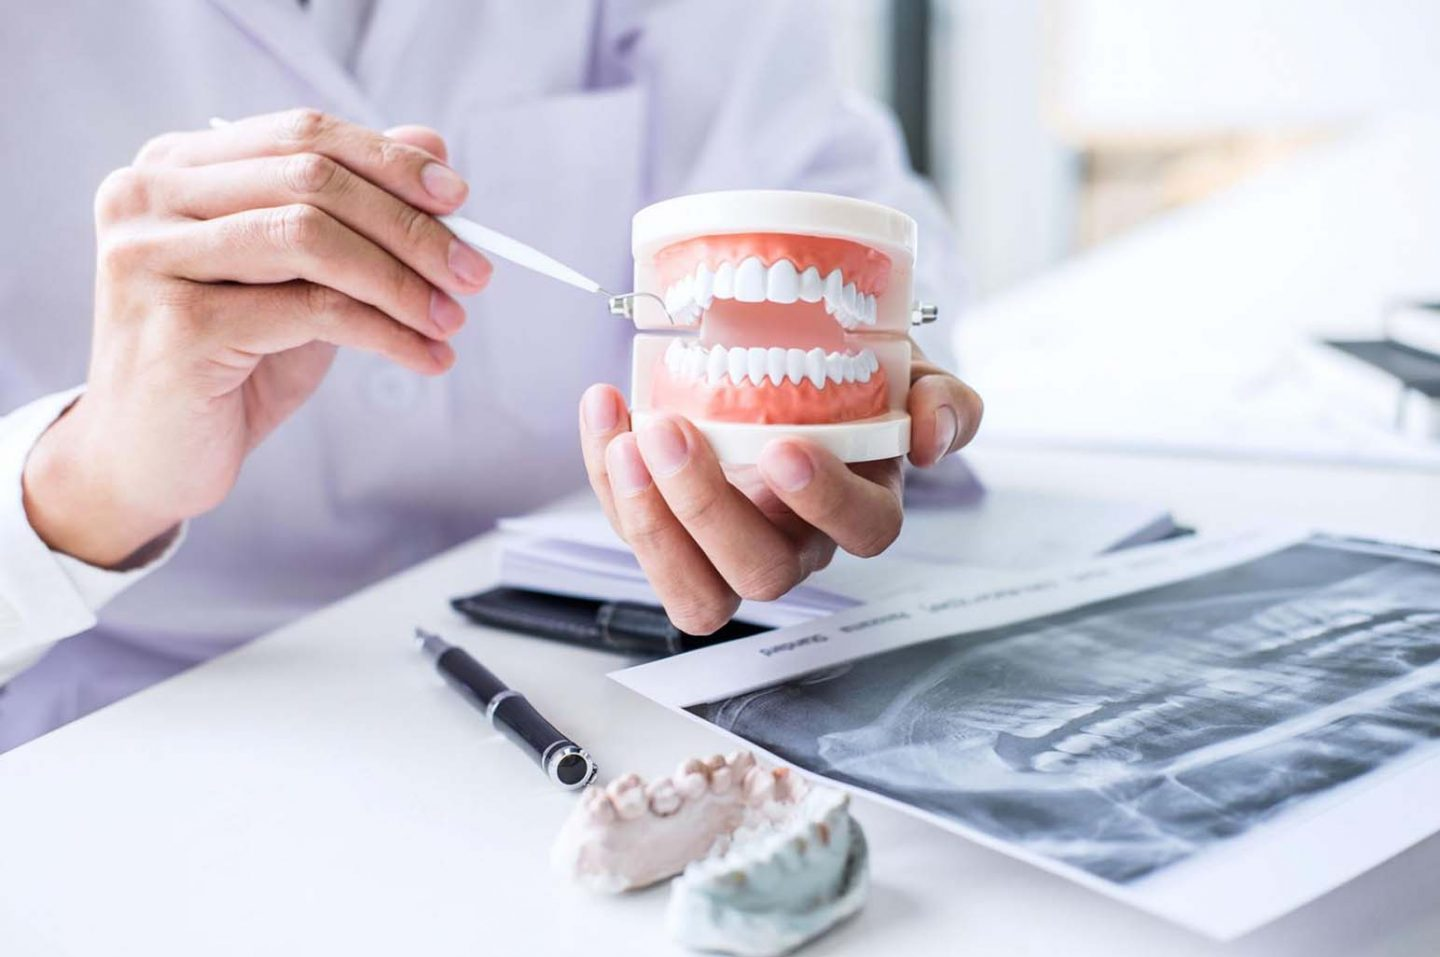 Differences Between Dentures And Dental Implants